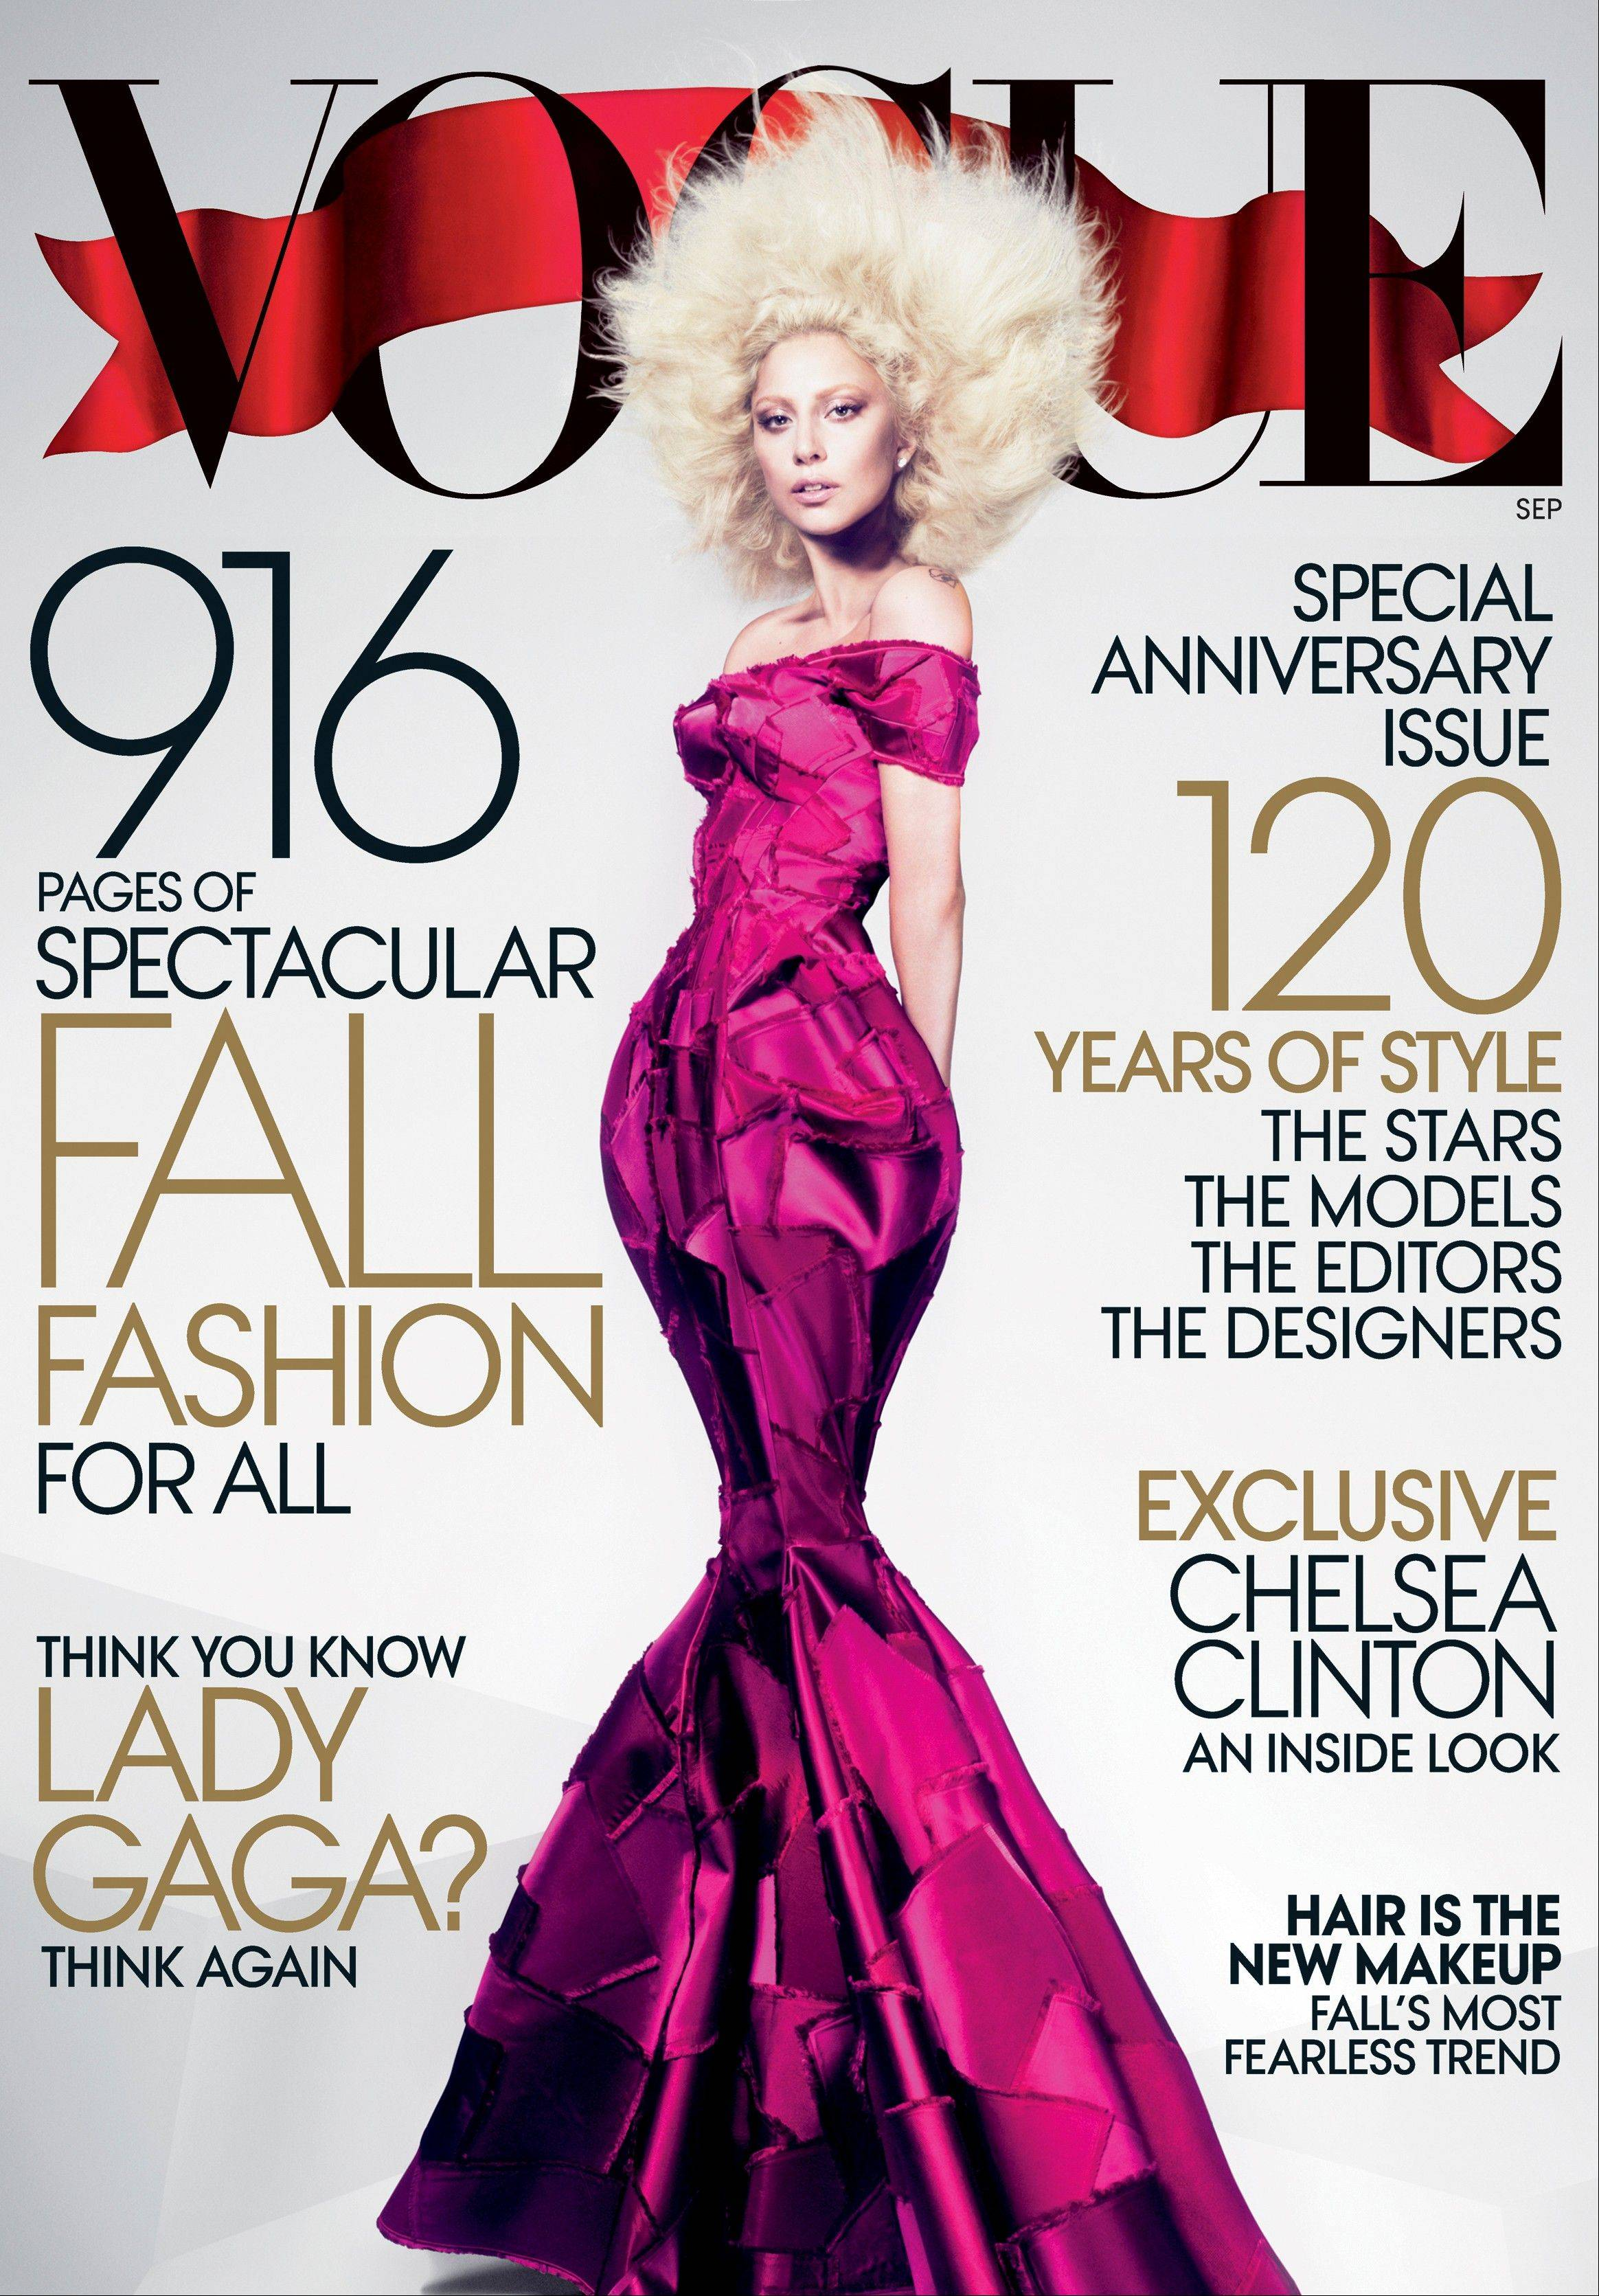 Lady Gaga is featured on the cover of the September issue of Vogue magazine.